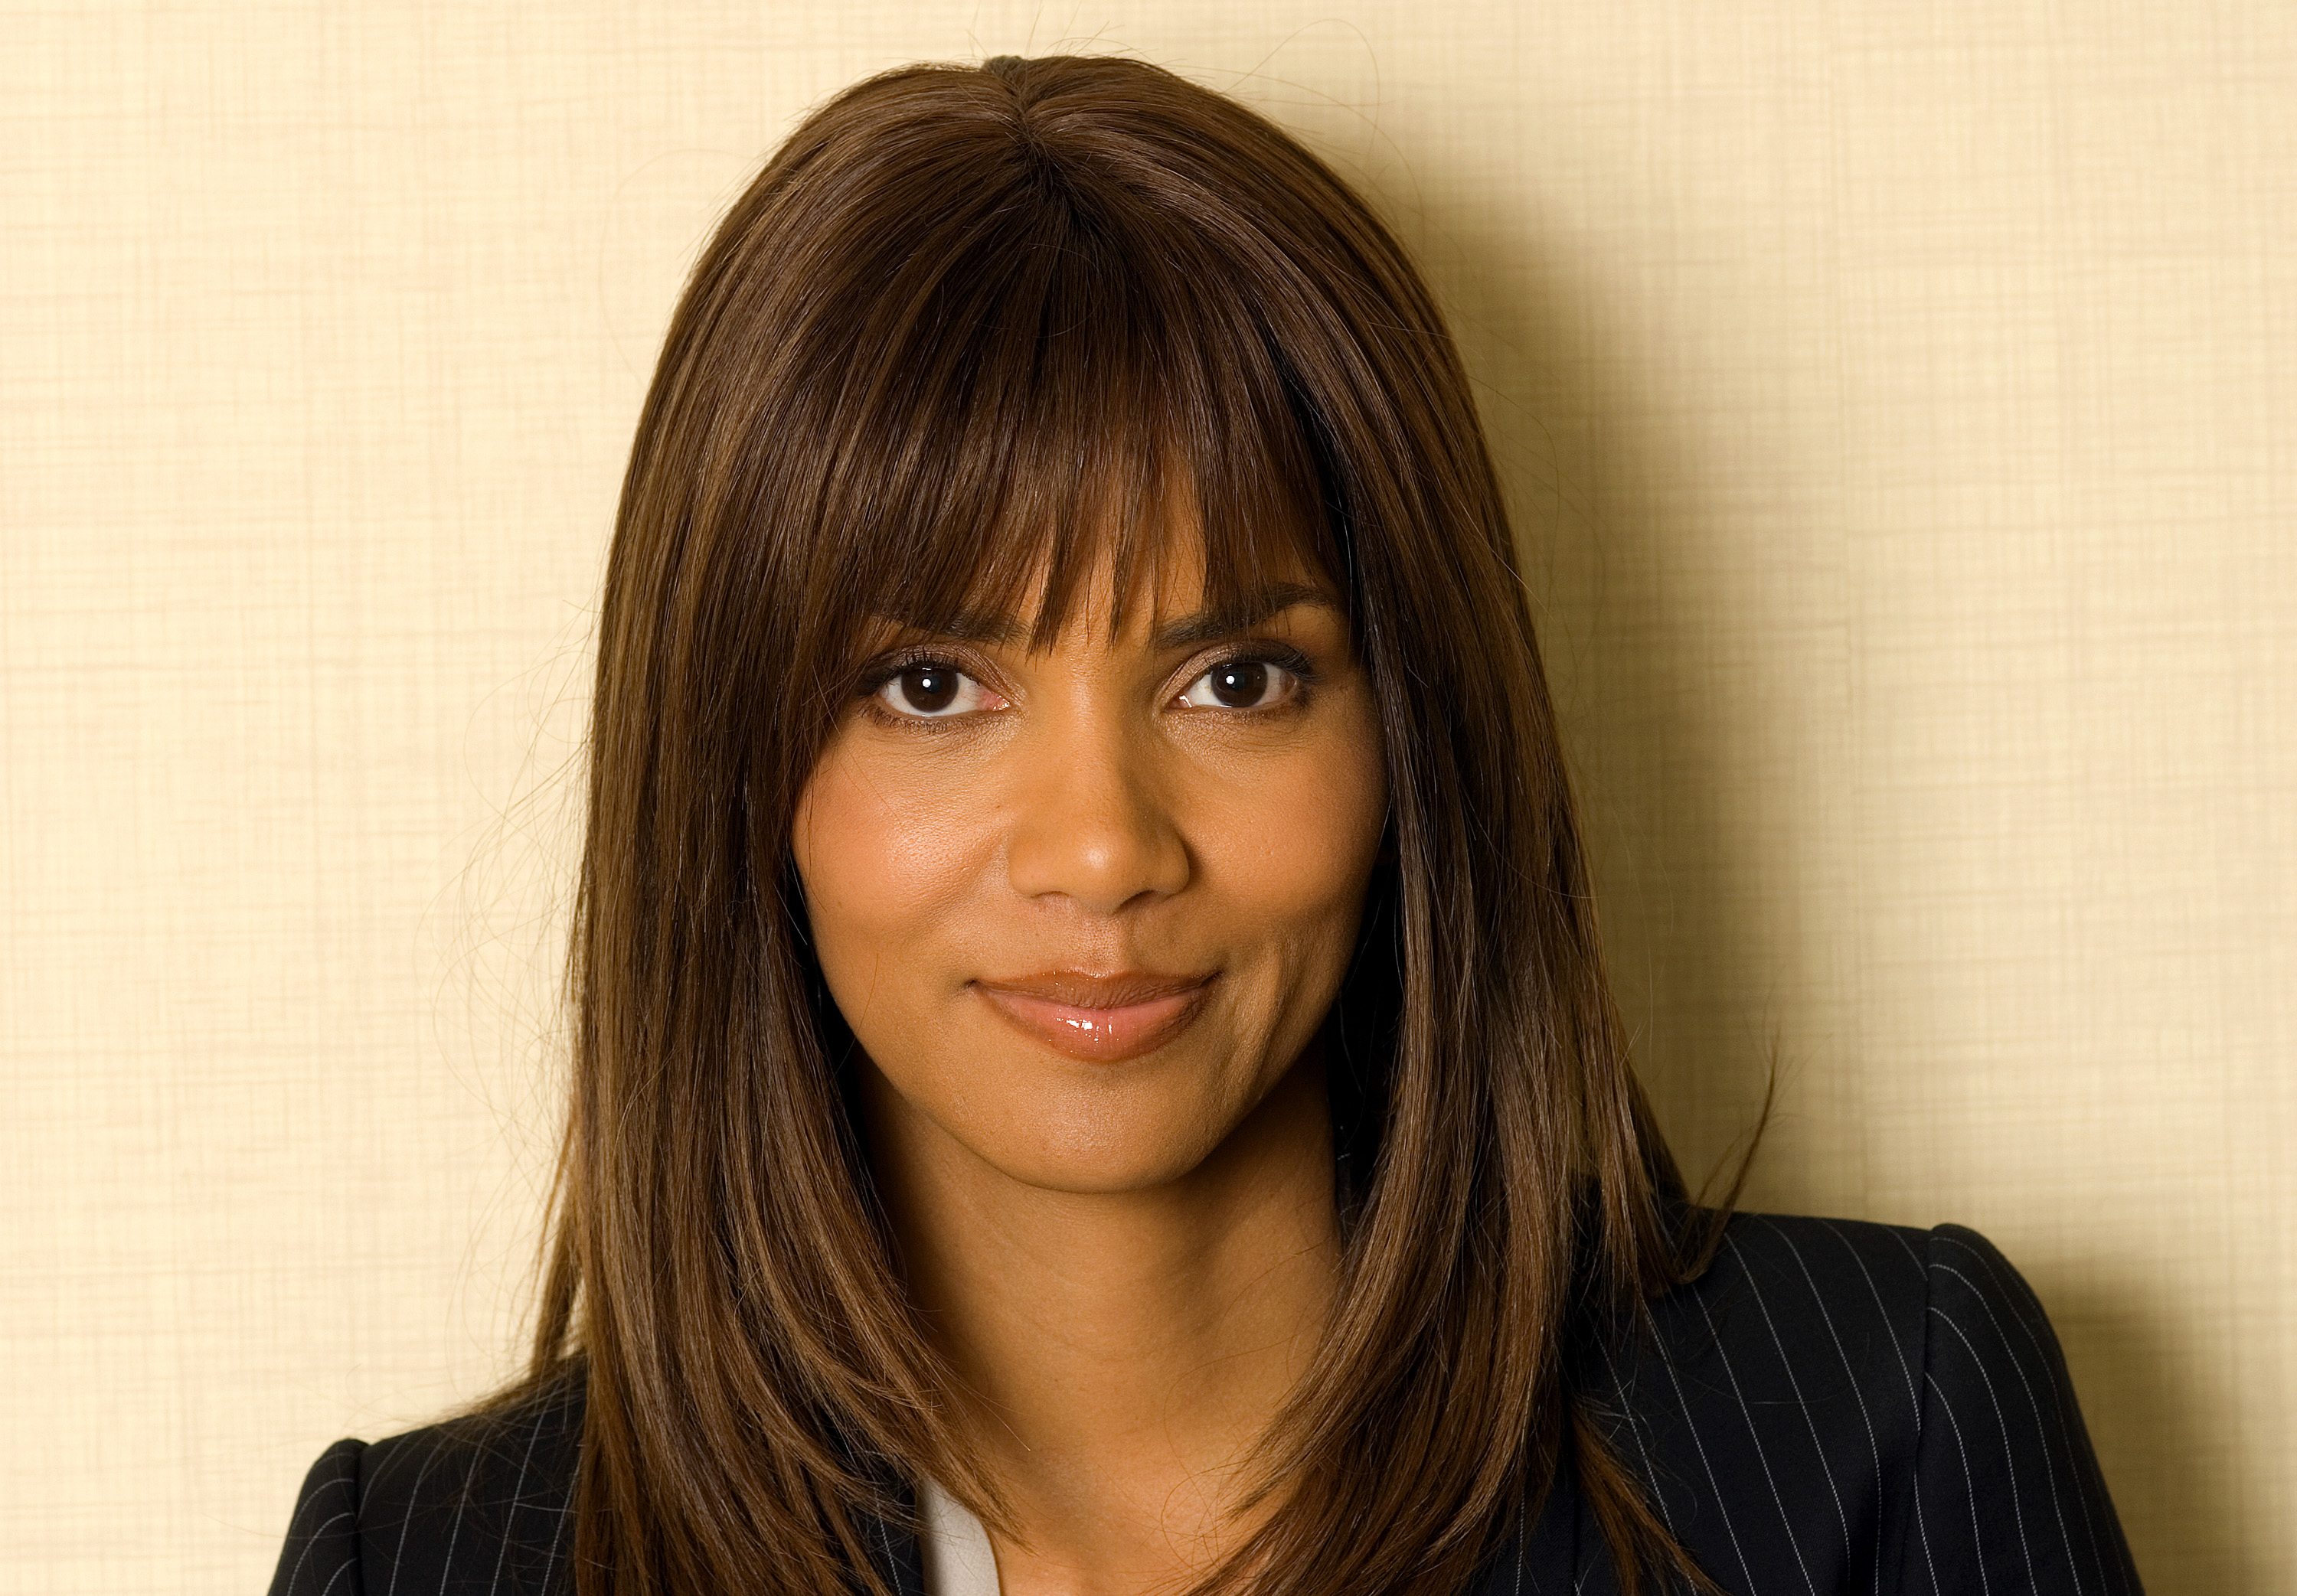 Halle Berry - Images